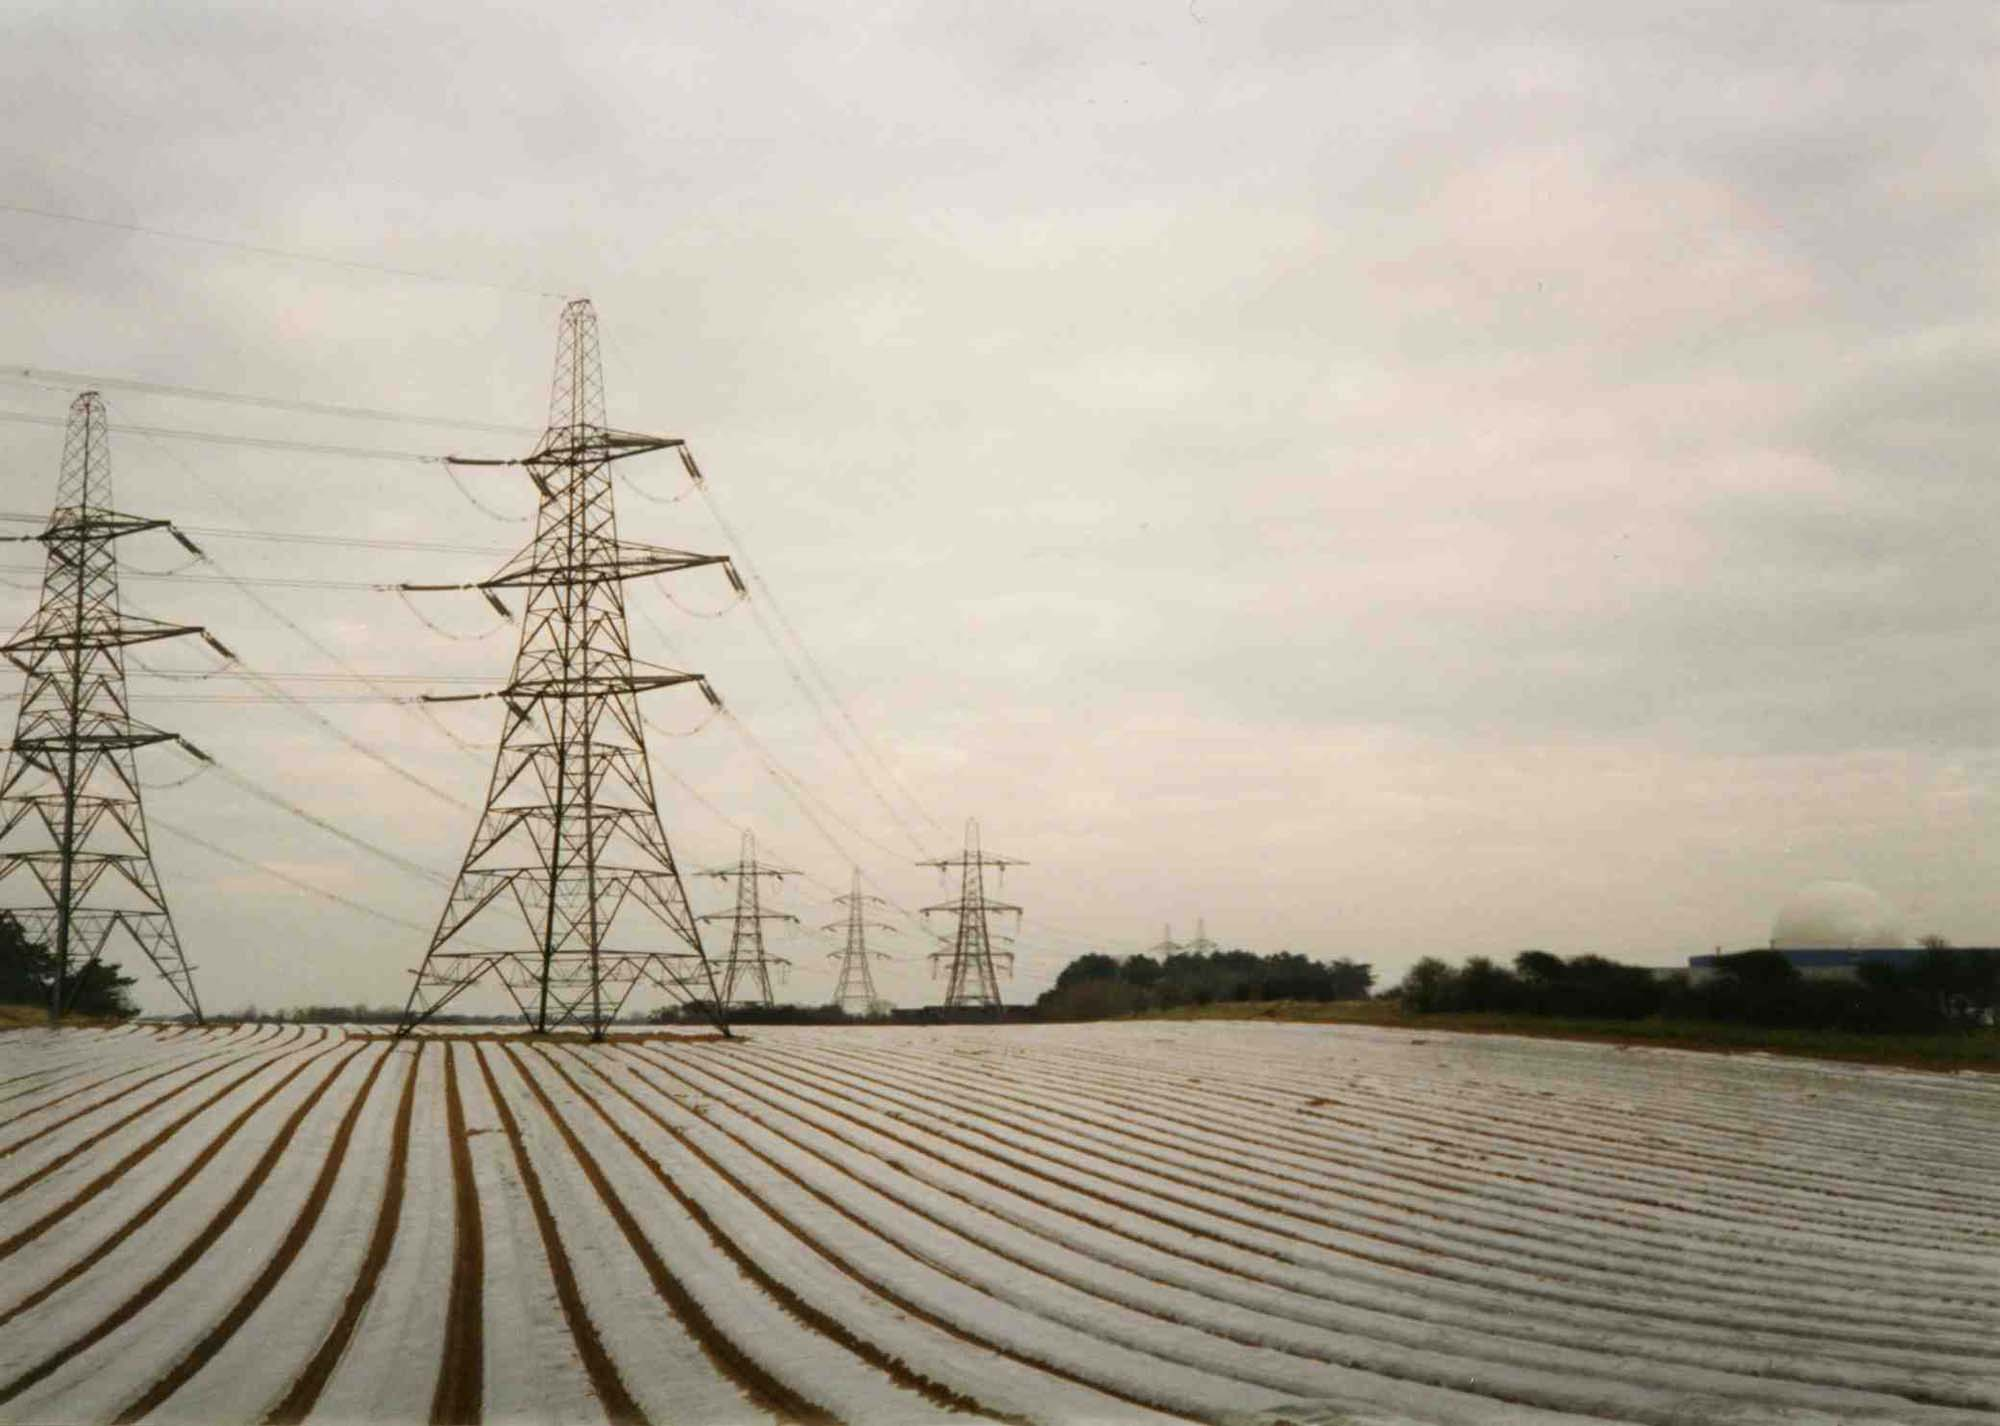 a photo looking across fields towards electricity pylons